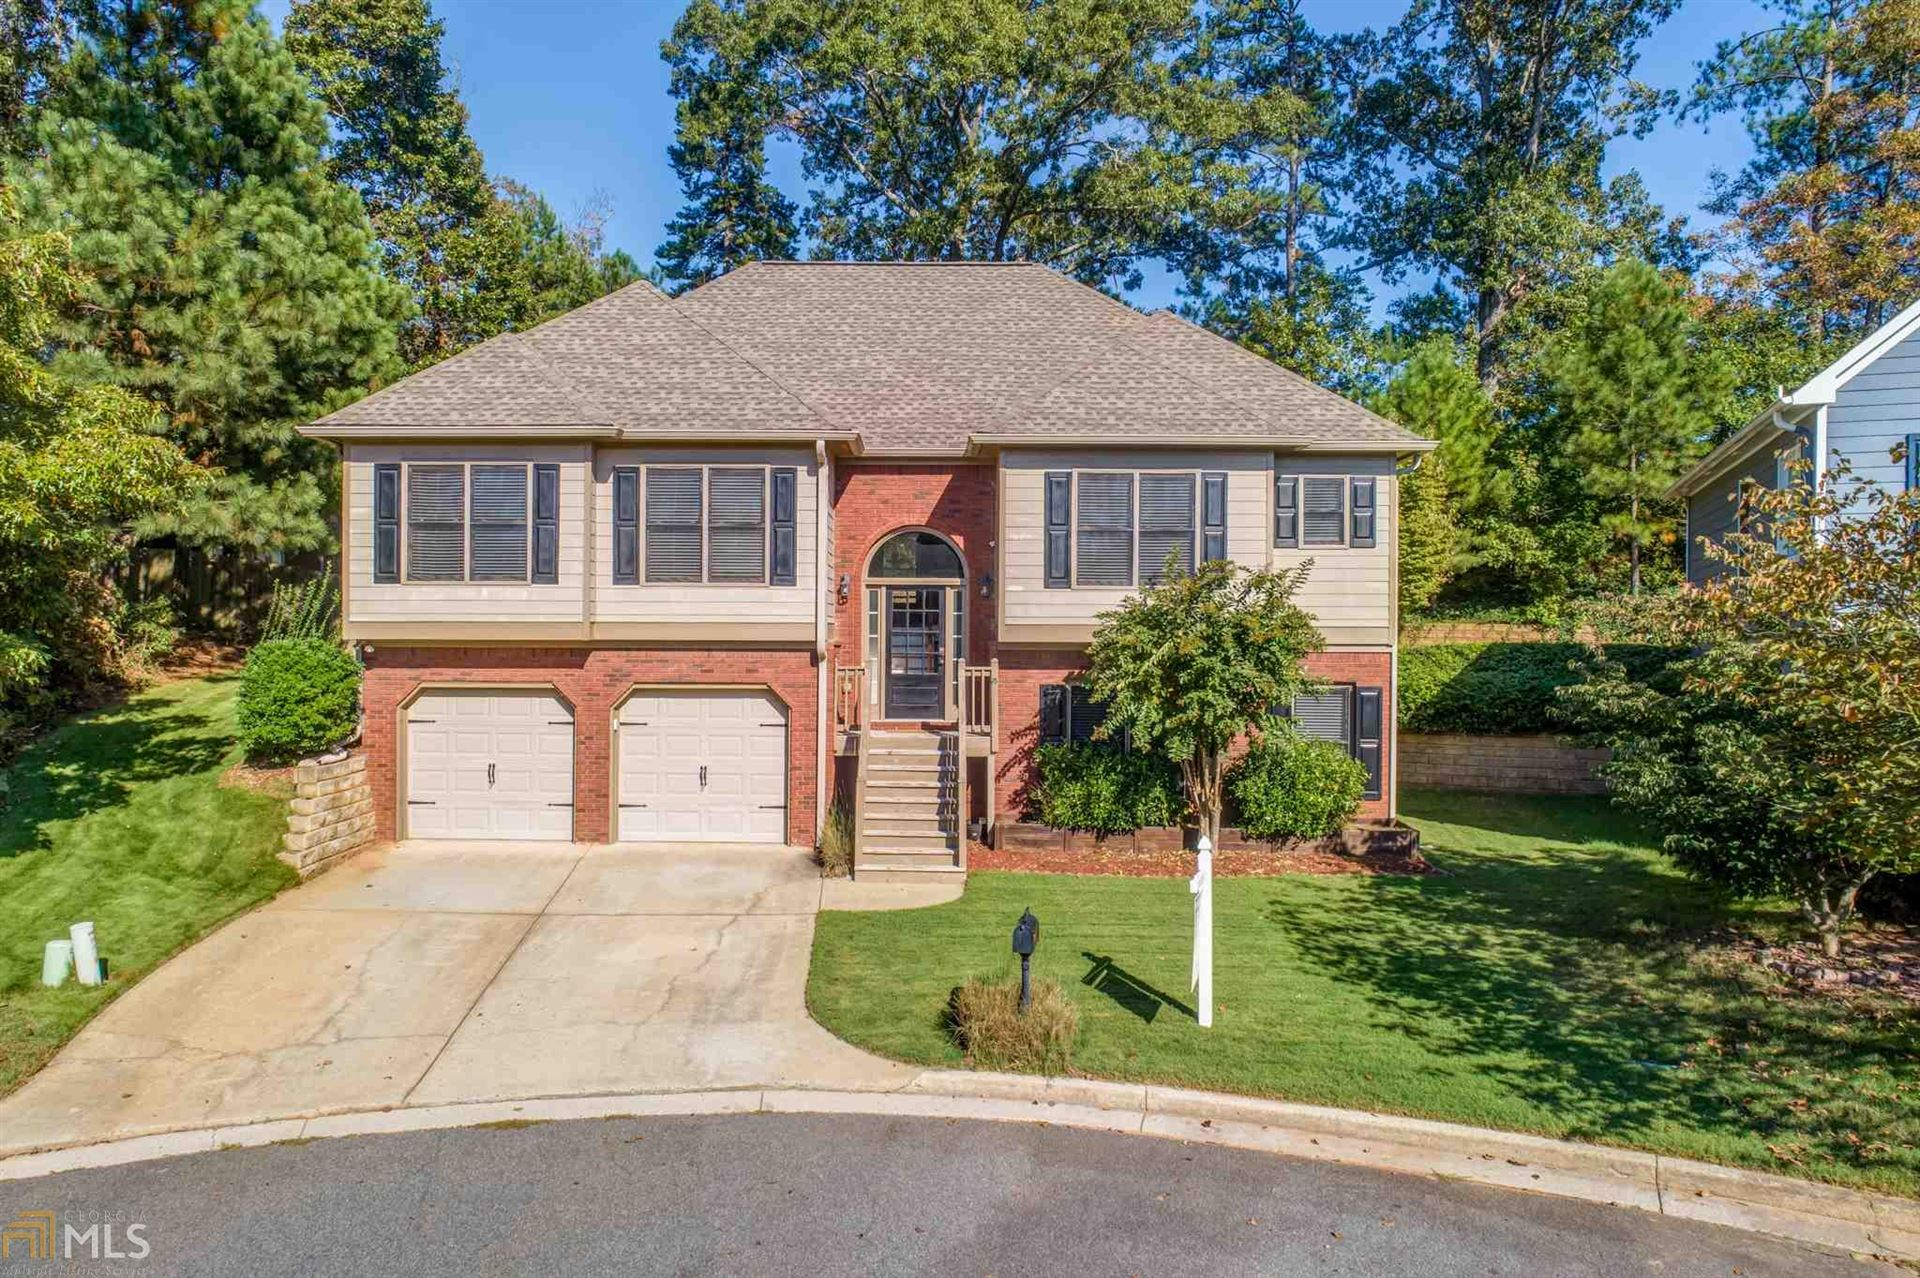 4303 Clairesbrook Ln, Acworth, GA 30101 - MLS#: 8874353